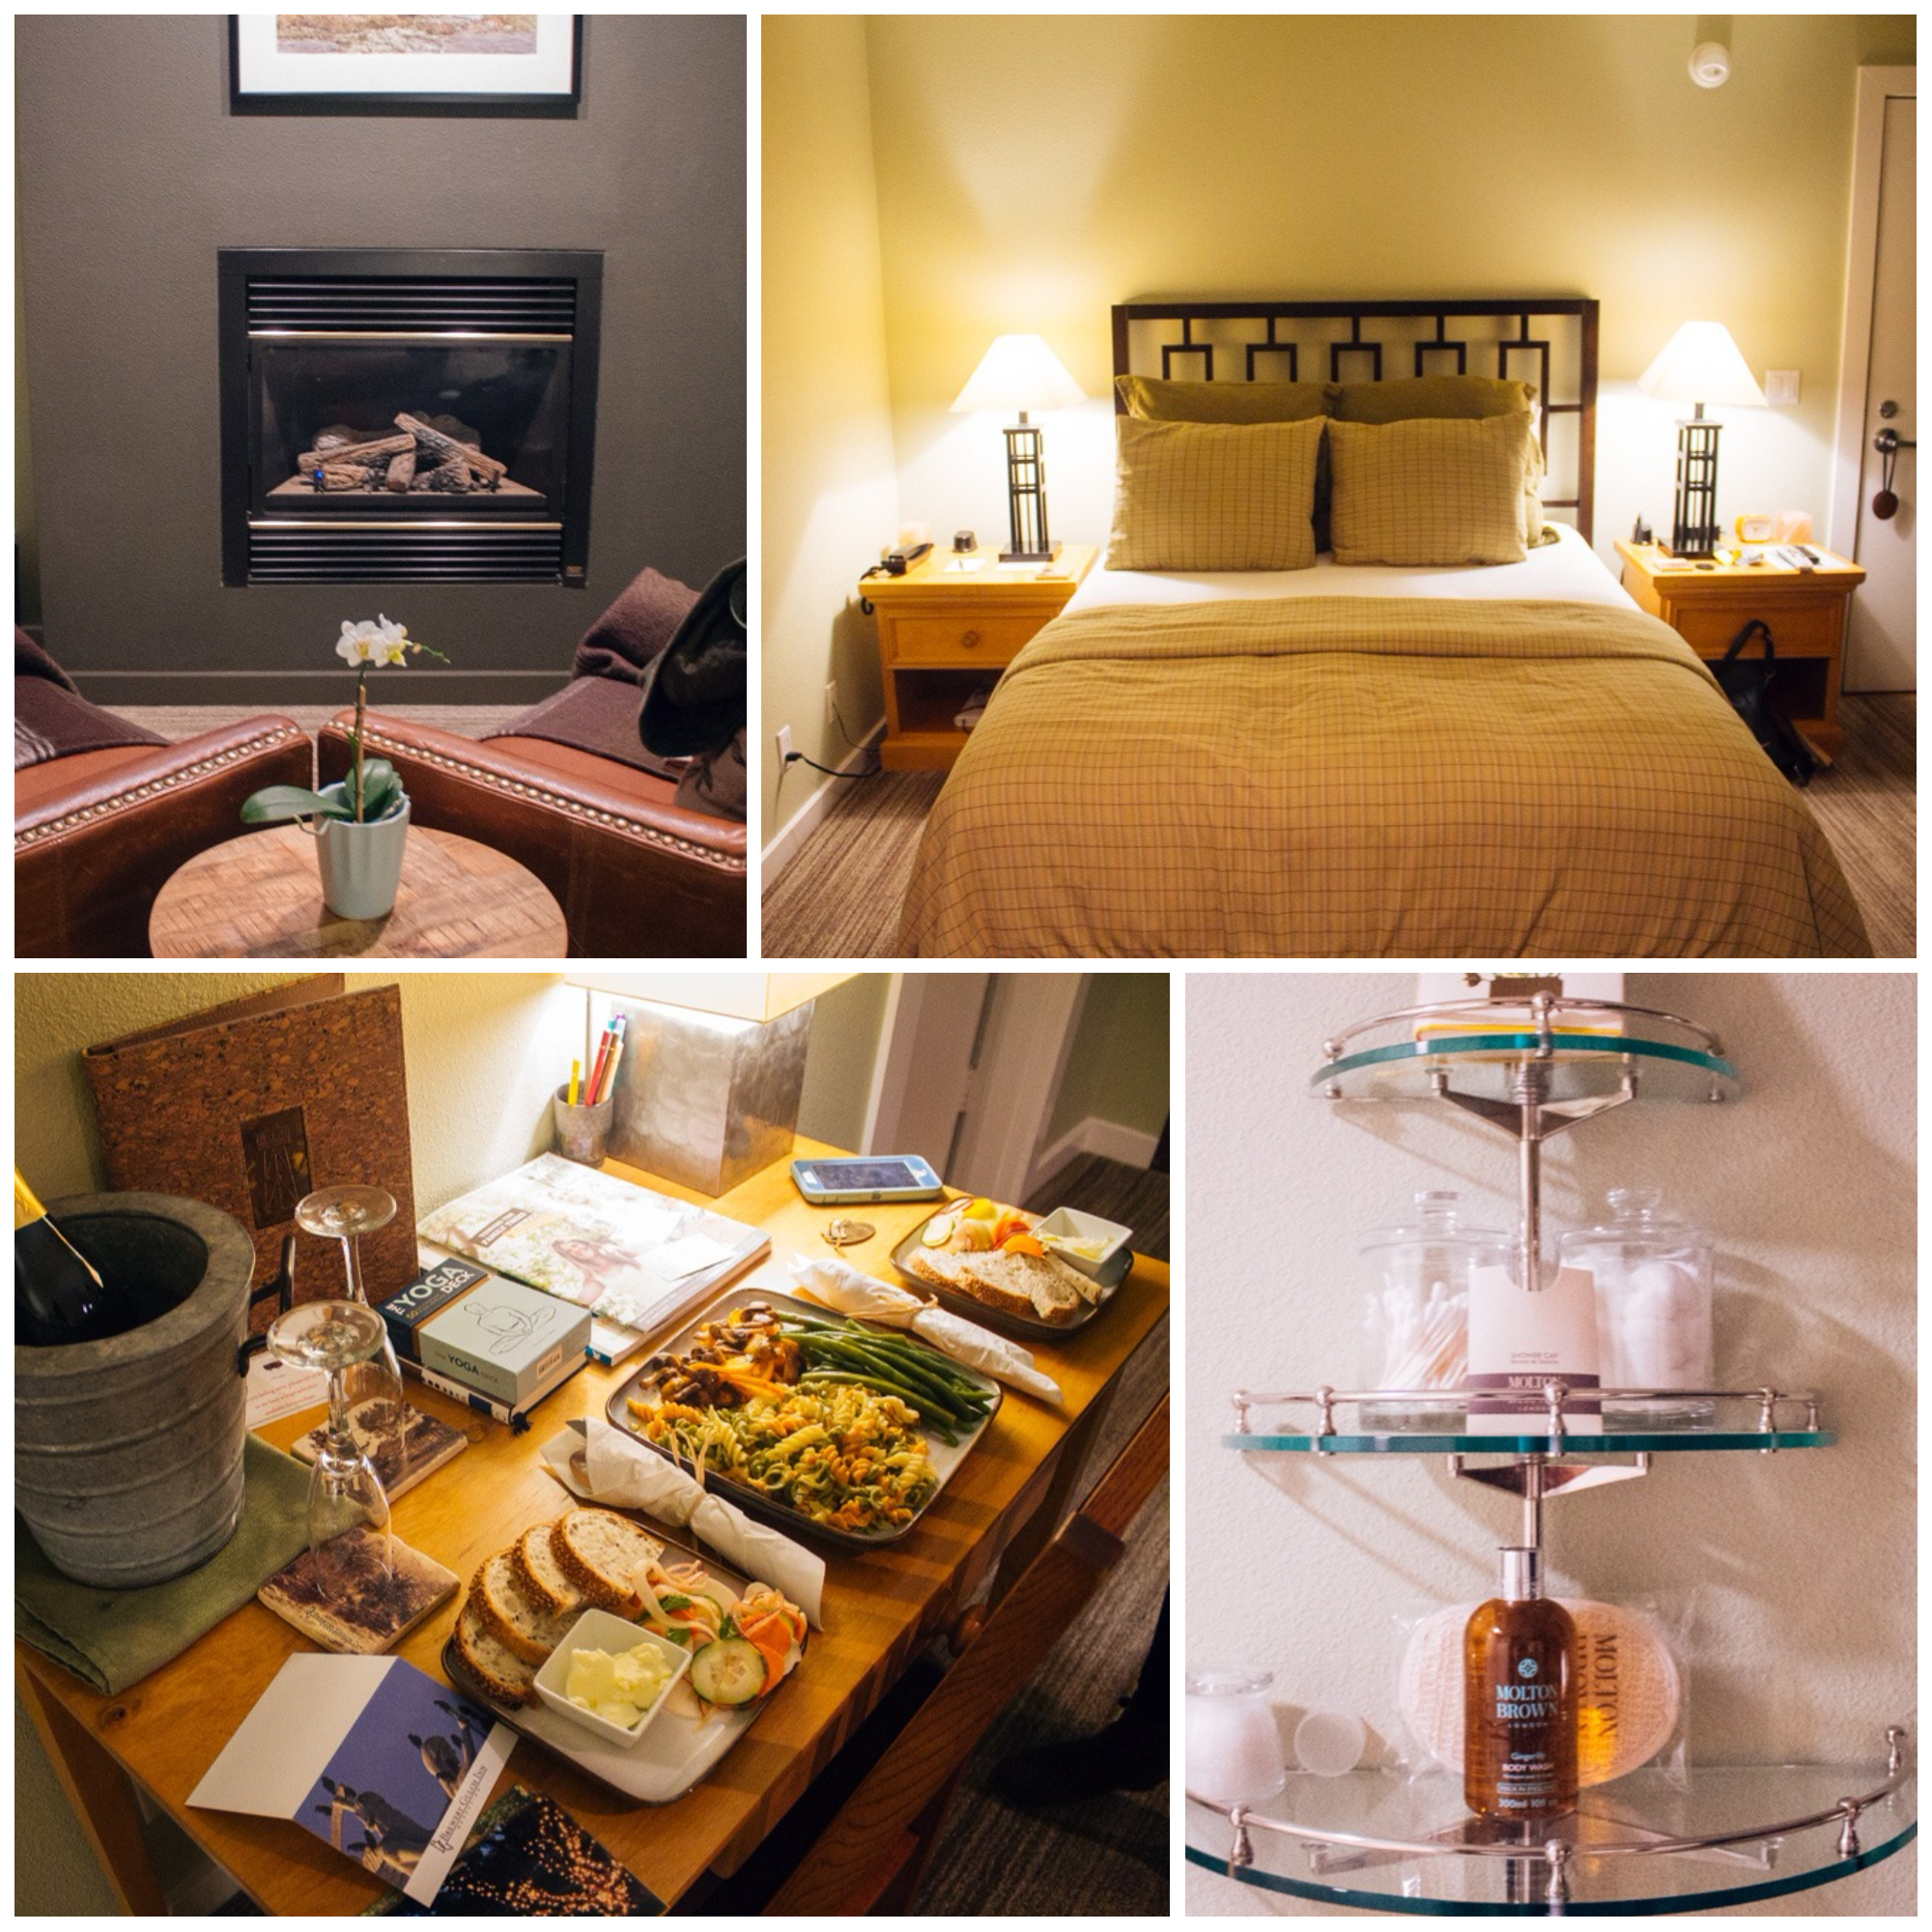 where to stay in mendocino? Brewery Gulch Inn is a great options for Mendocino accommodation